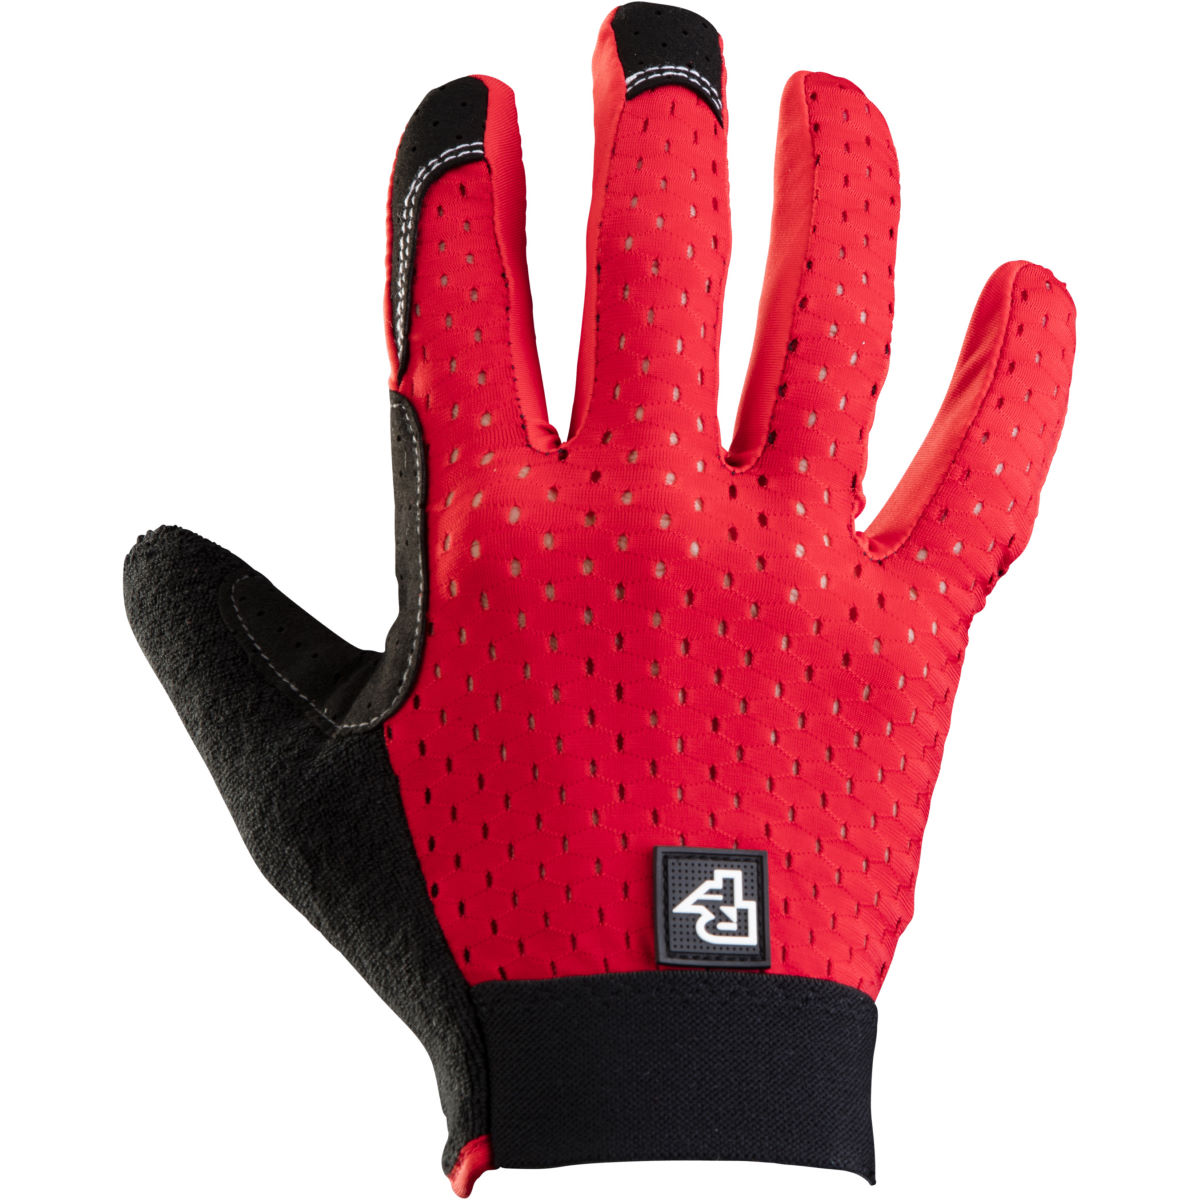 Gants Race Face Stage - Medium Flame Gants à doigts longs